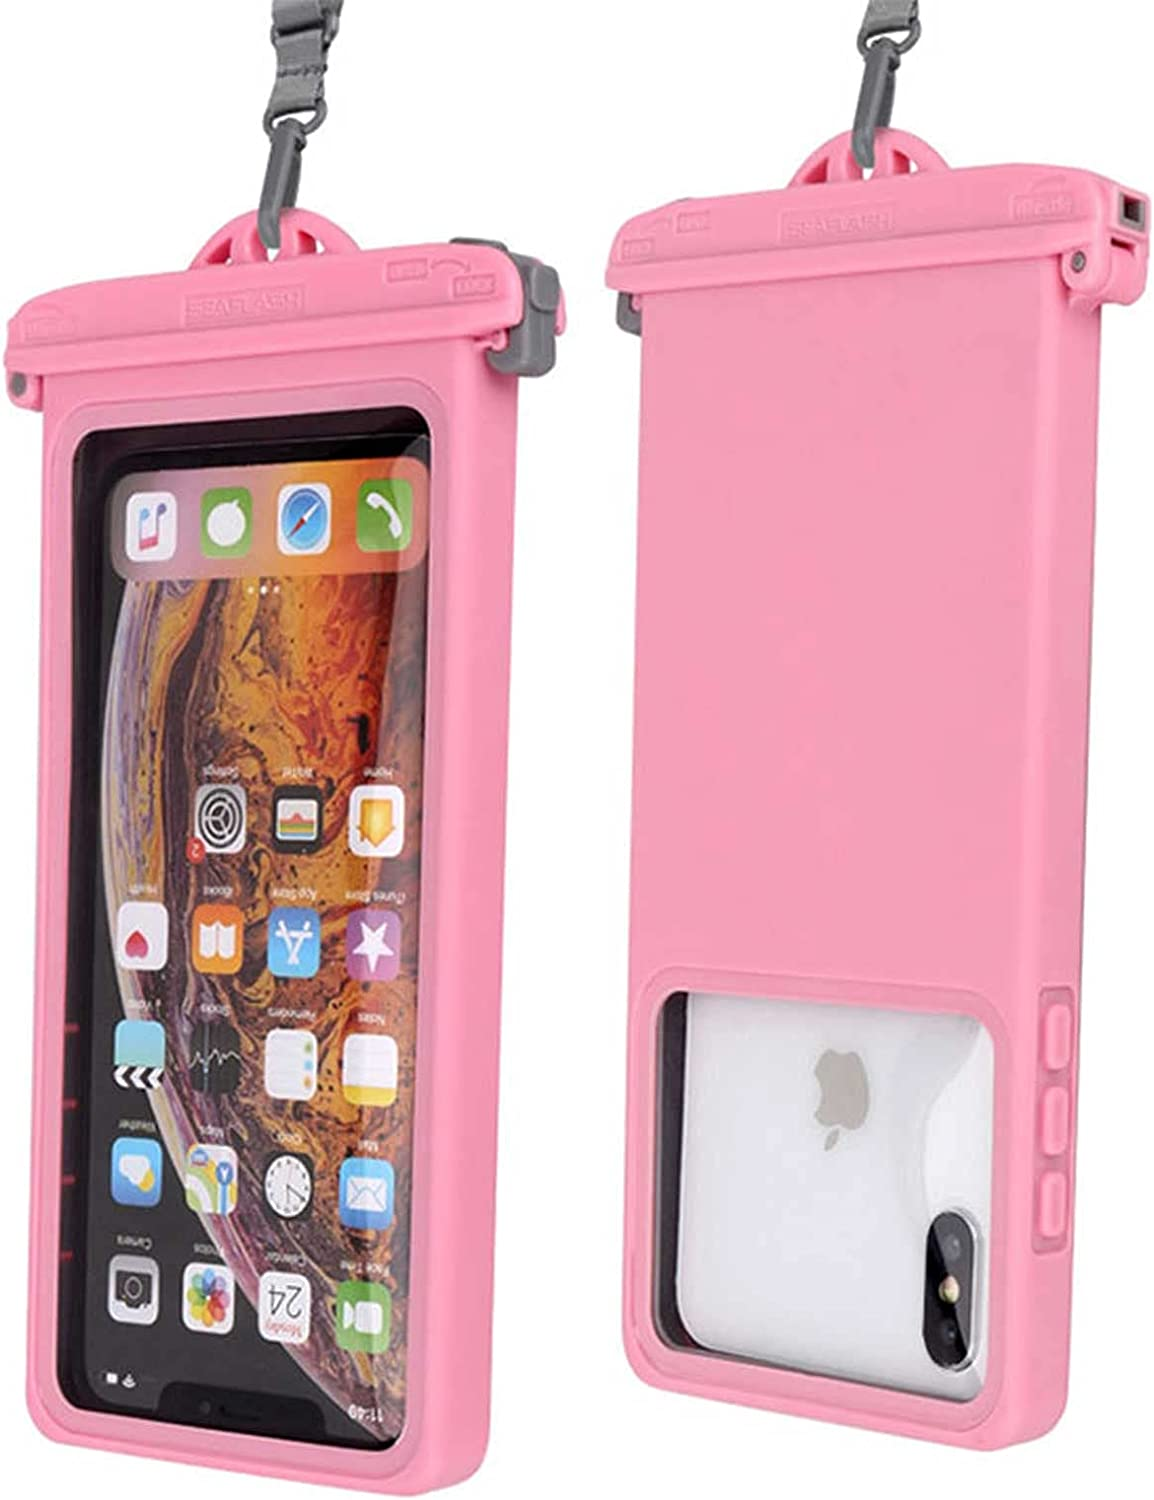 YQK Universal Waterproof Phone Pouch Underwater Case Clear Cellphone Dry Bag with Lanyard Outdoor Beach Swimming Snorkeling Bag for Smartphone up to 6.9 Inch (Pink)